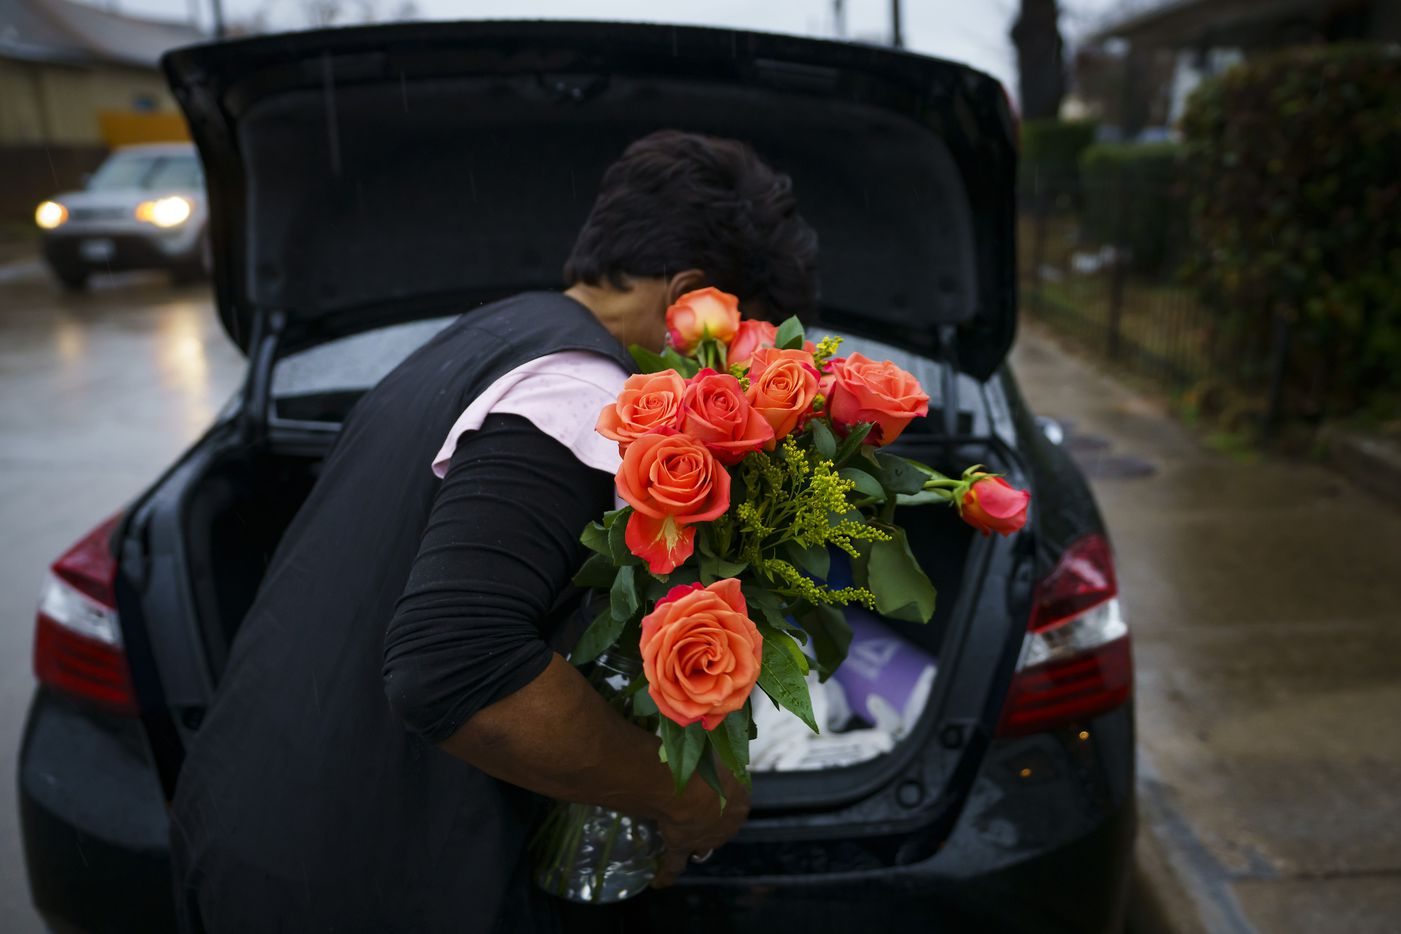 Earnestine Tarrant takes a vase of flowers that were given to her by a client in recognition of her retirement to her car after her final client.